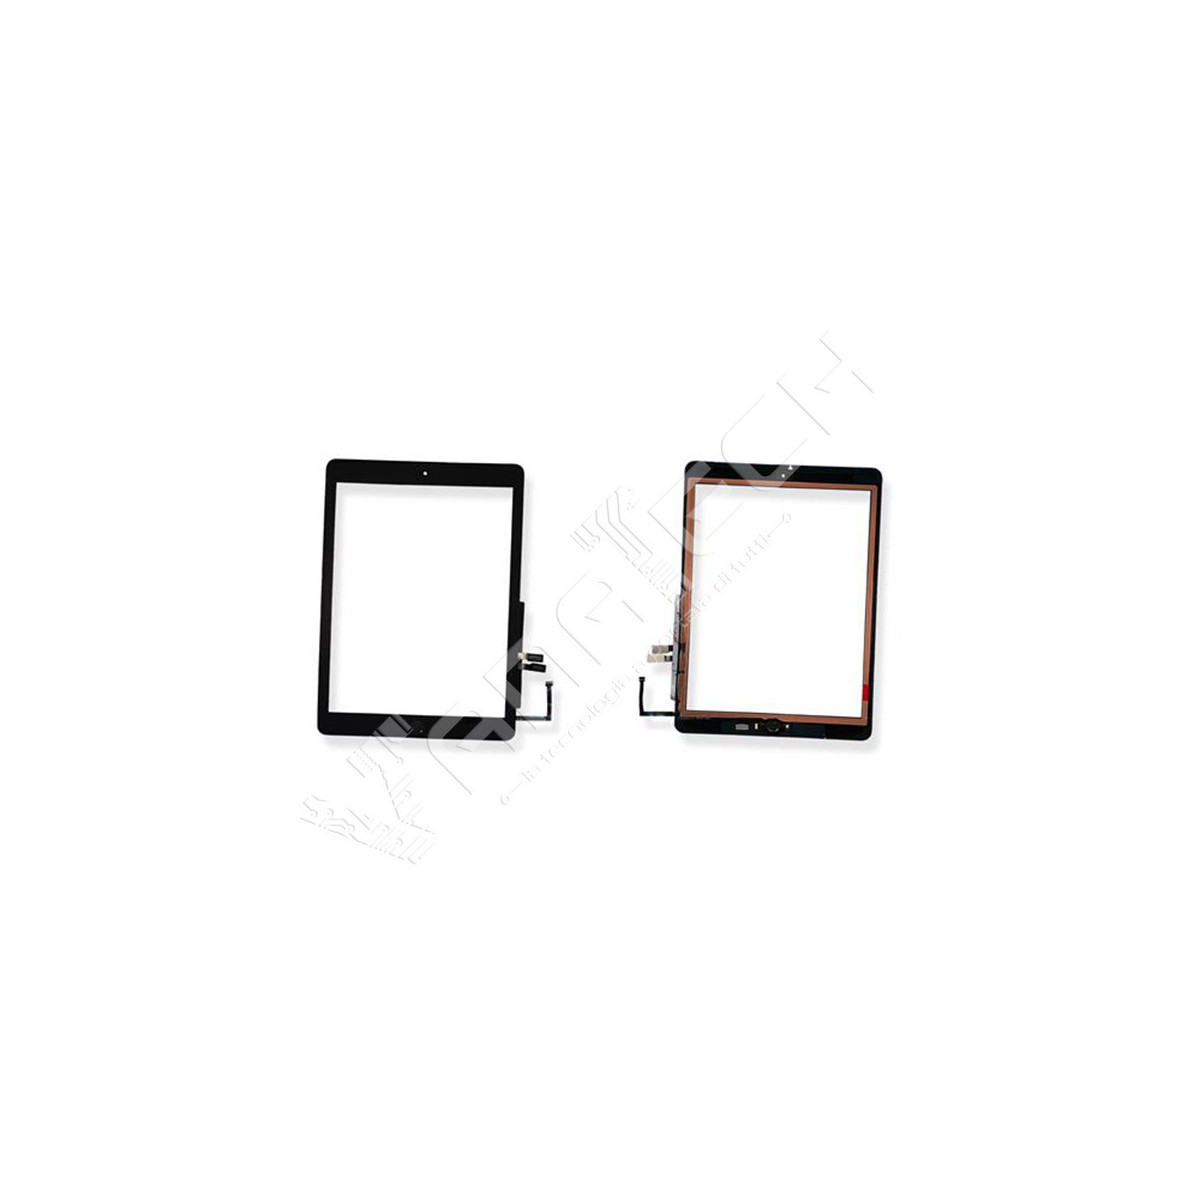 PC 026 PC DESKTOP COMPLETO INTEL I5-6400 8GB RAM 1TB HARD DISK